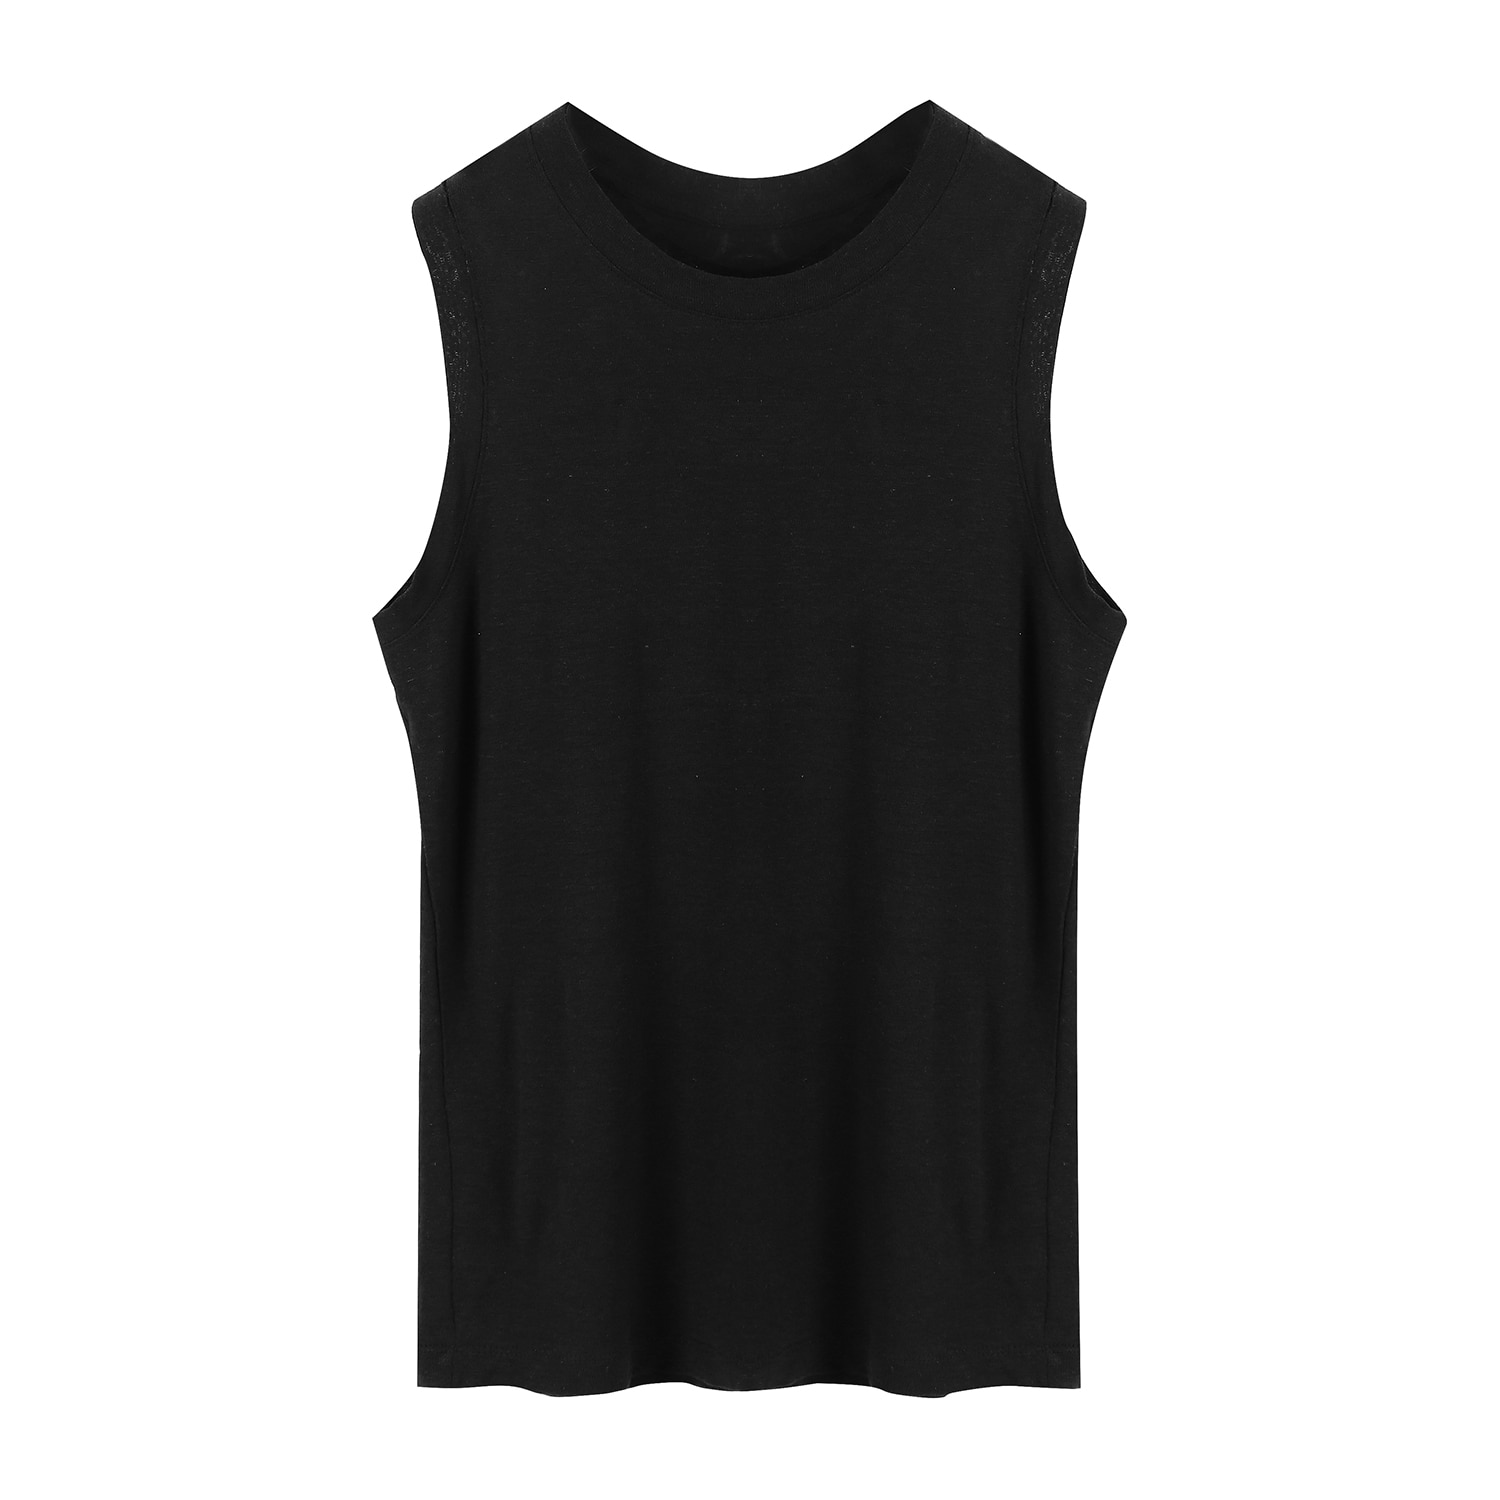 ORE COTTON 004 Sleeveless Black